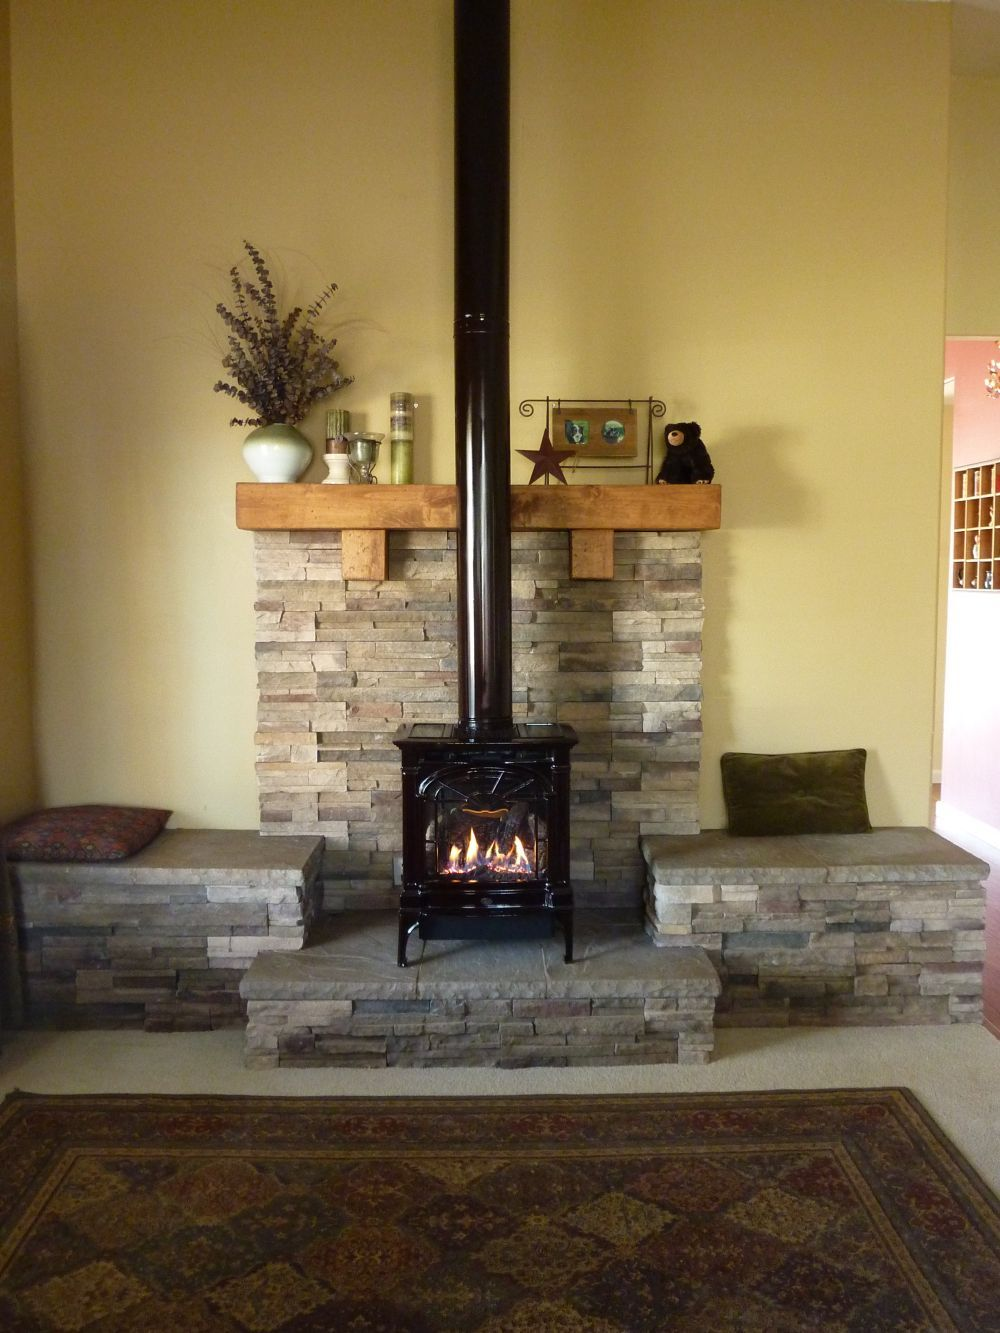 Pin By Katrina Starkweather On Abode Wood Stove Hearth Wood